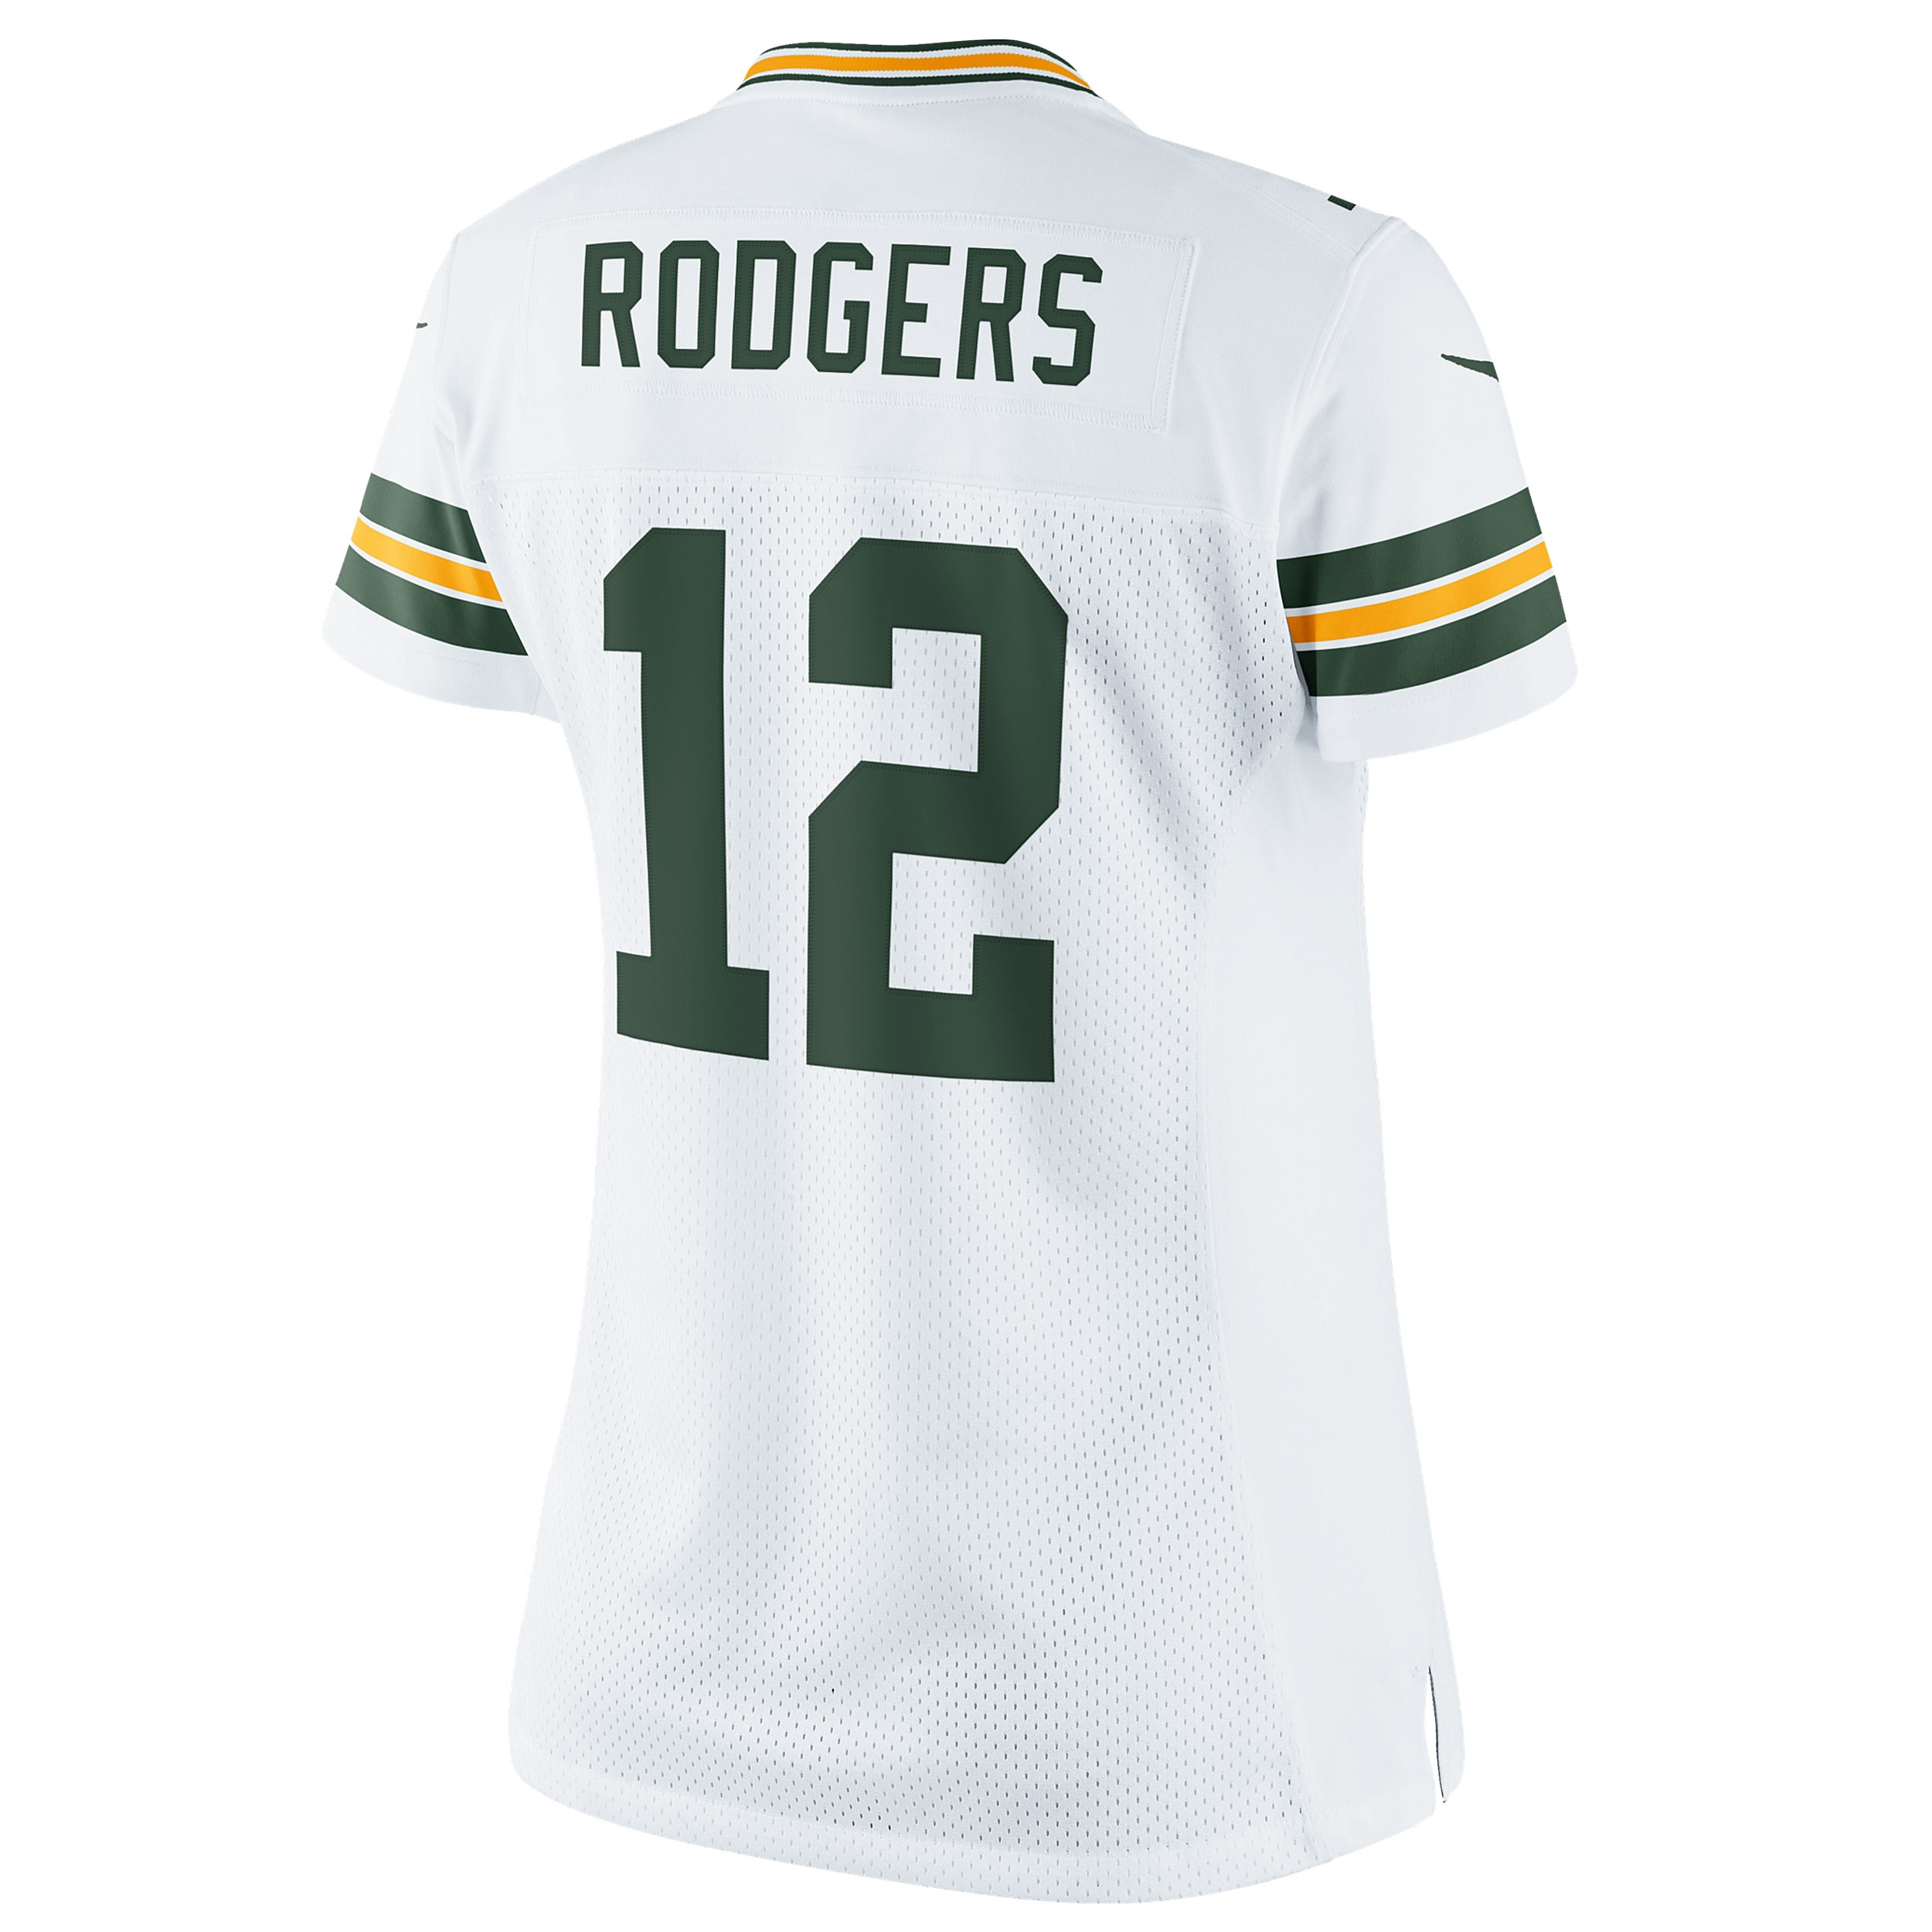 #12 Aaron Rodgers Away Women's Limited Jersey